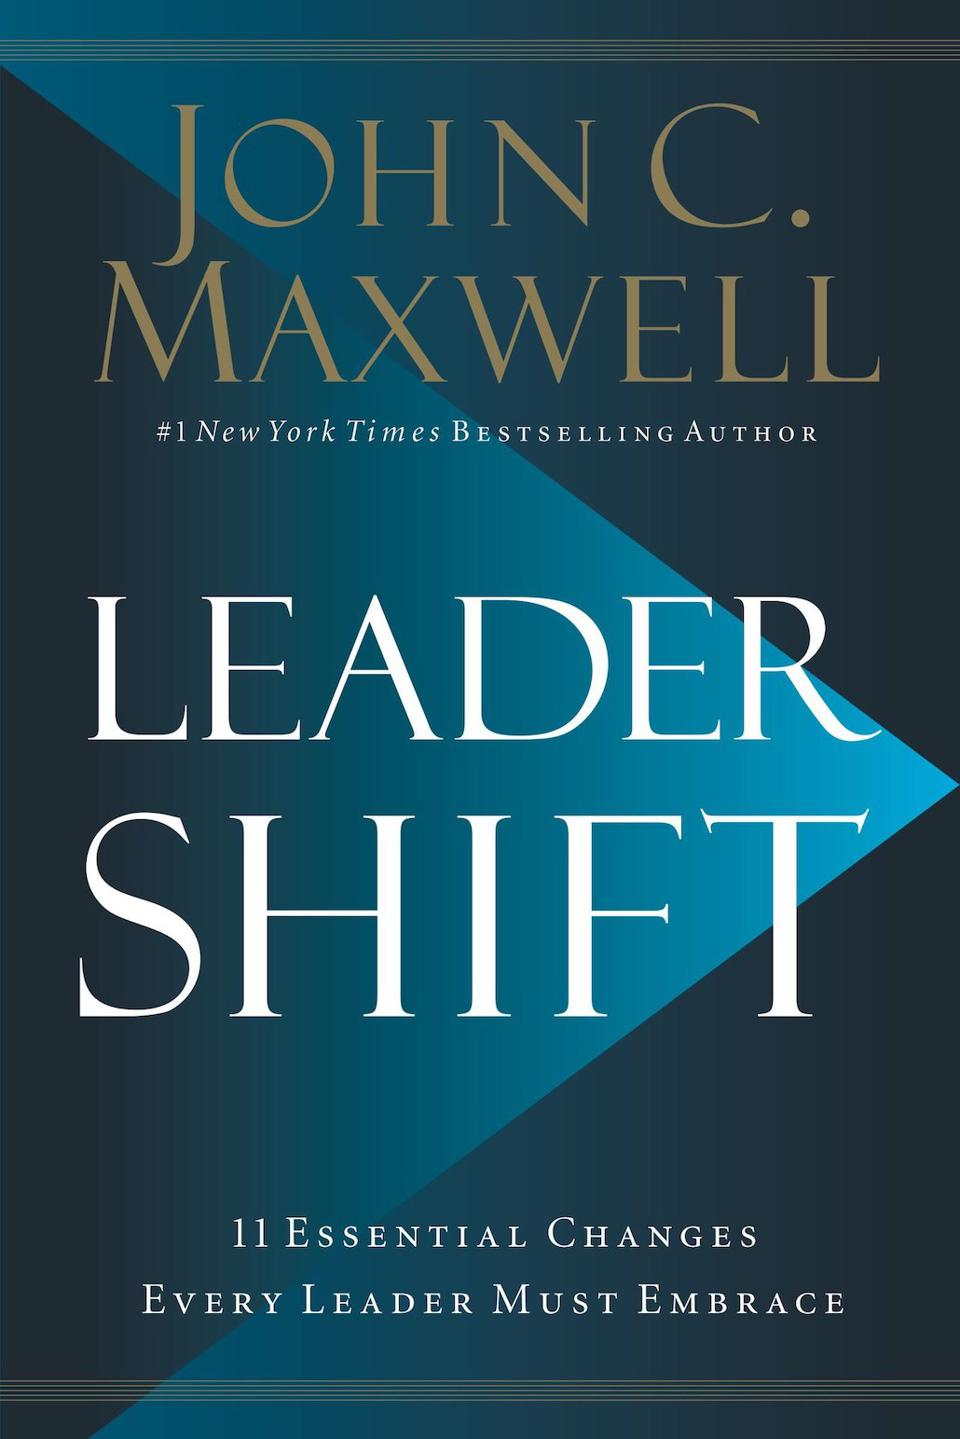 Leadershift: 11 Essential Changes Every Leader Must Embrace by John C. Maxwell